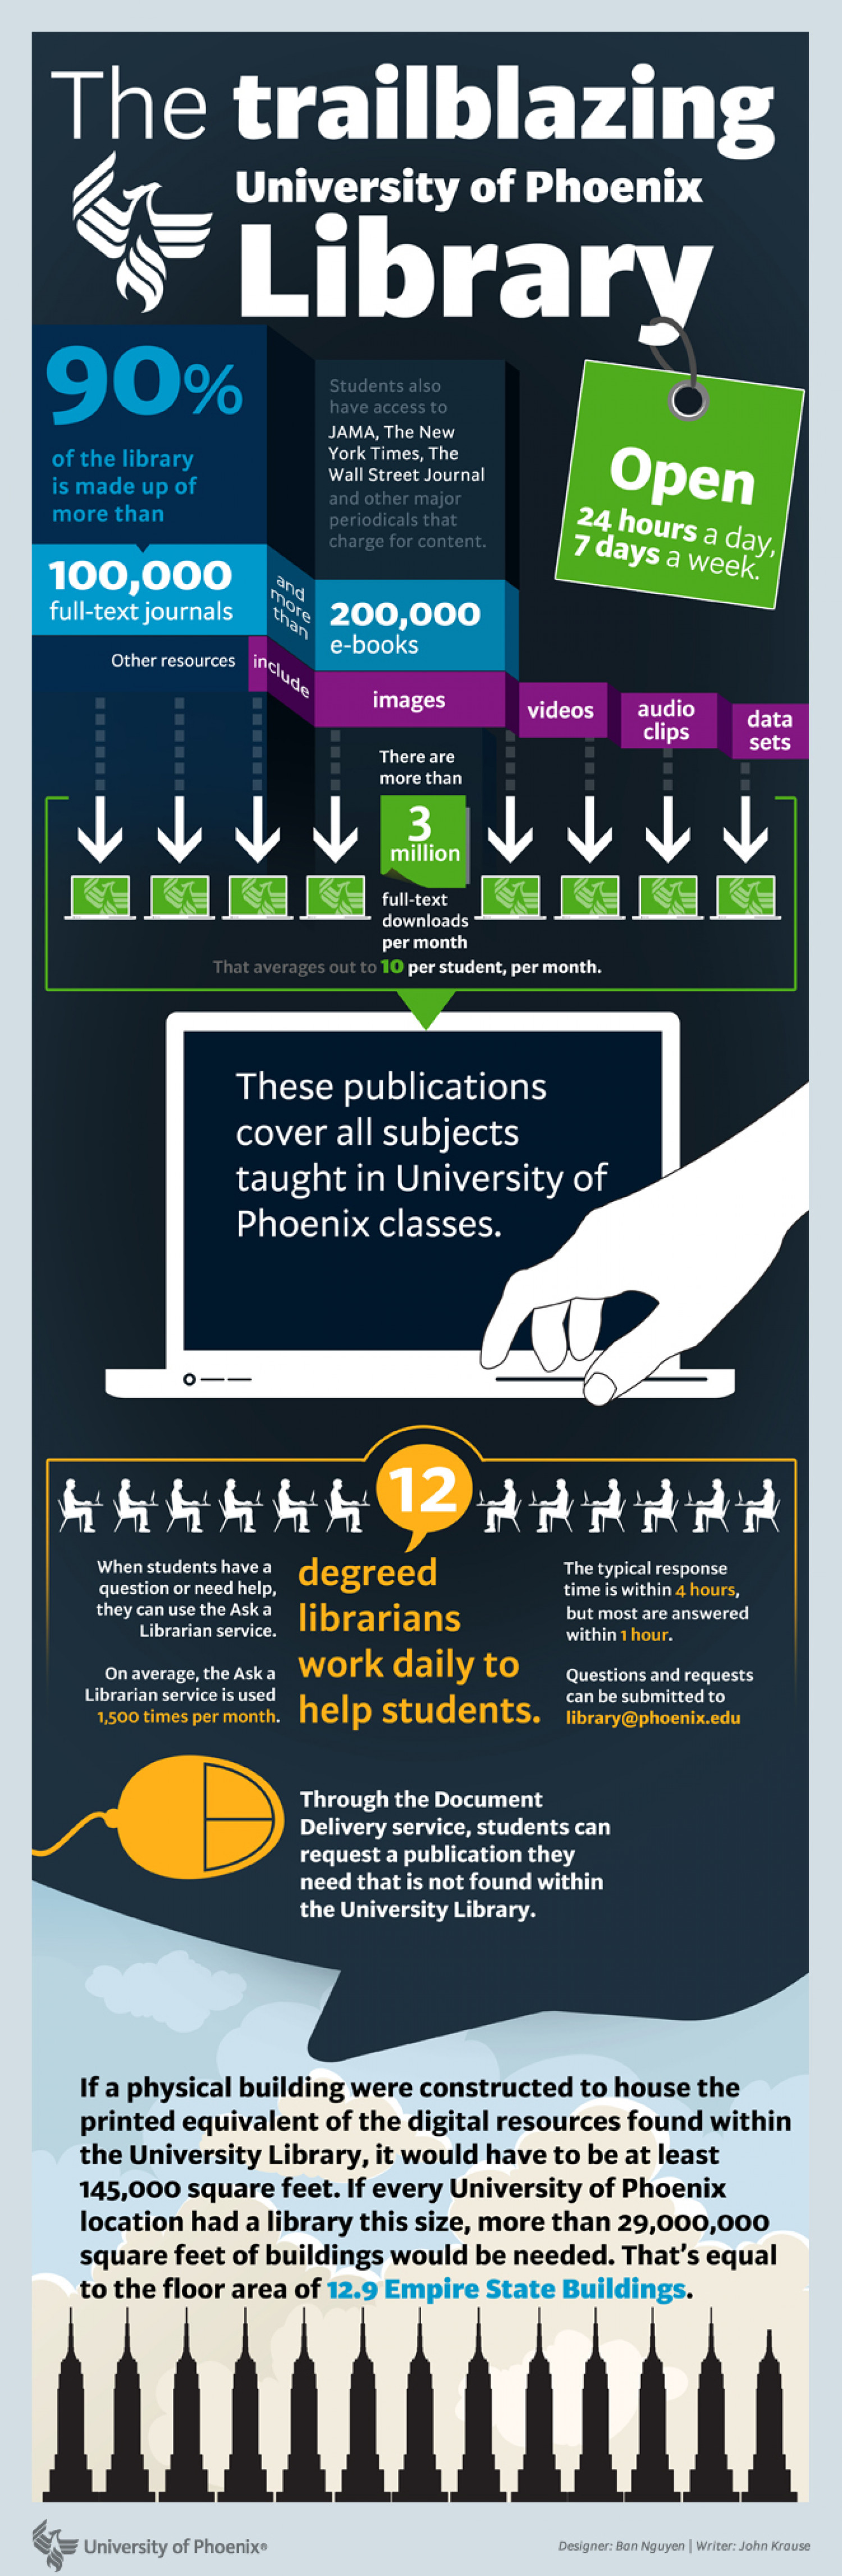 Navigating the digital halls of the University of Phoenix Library Infographic